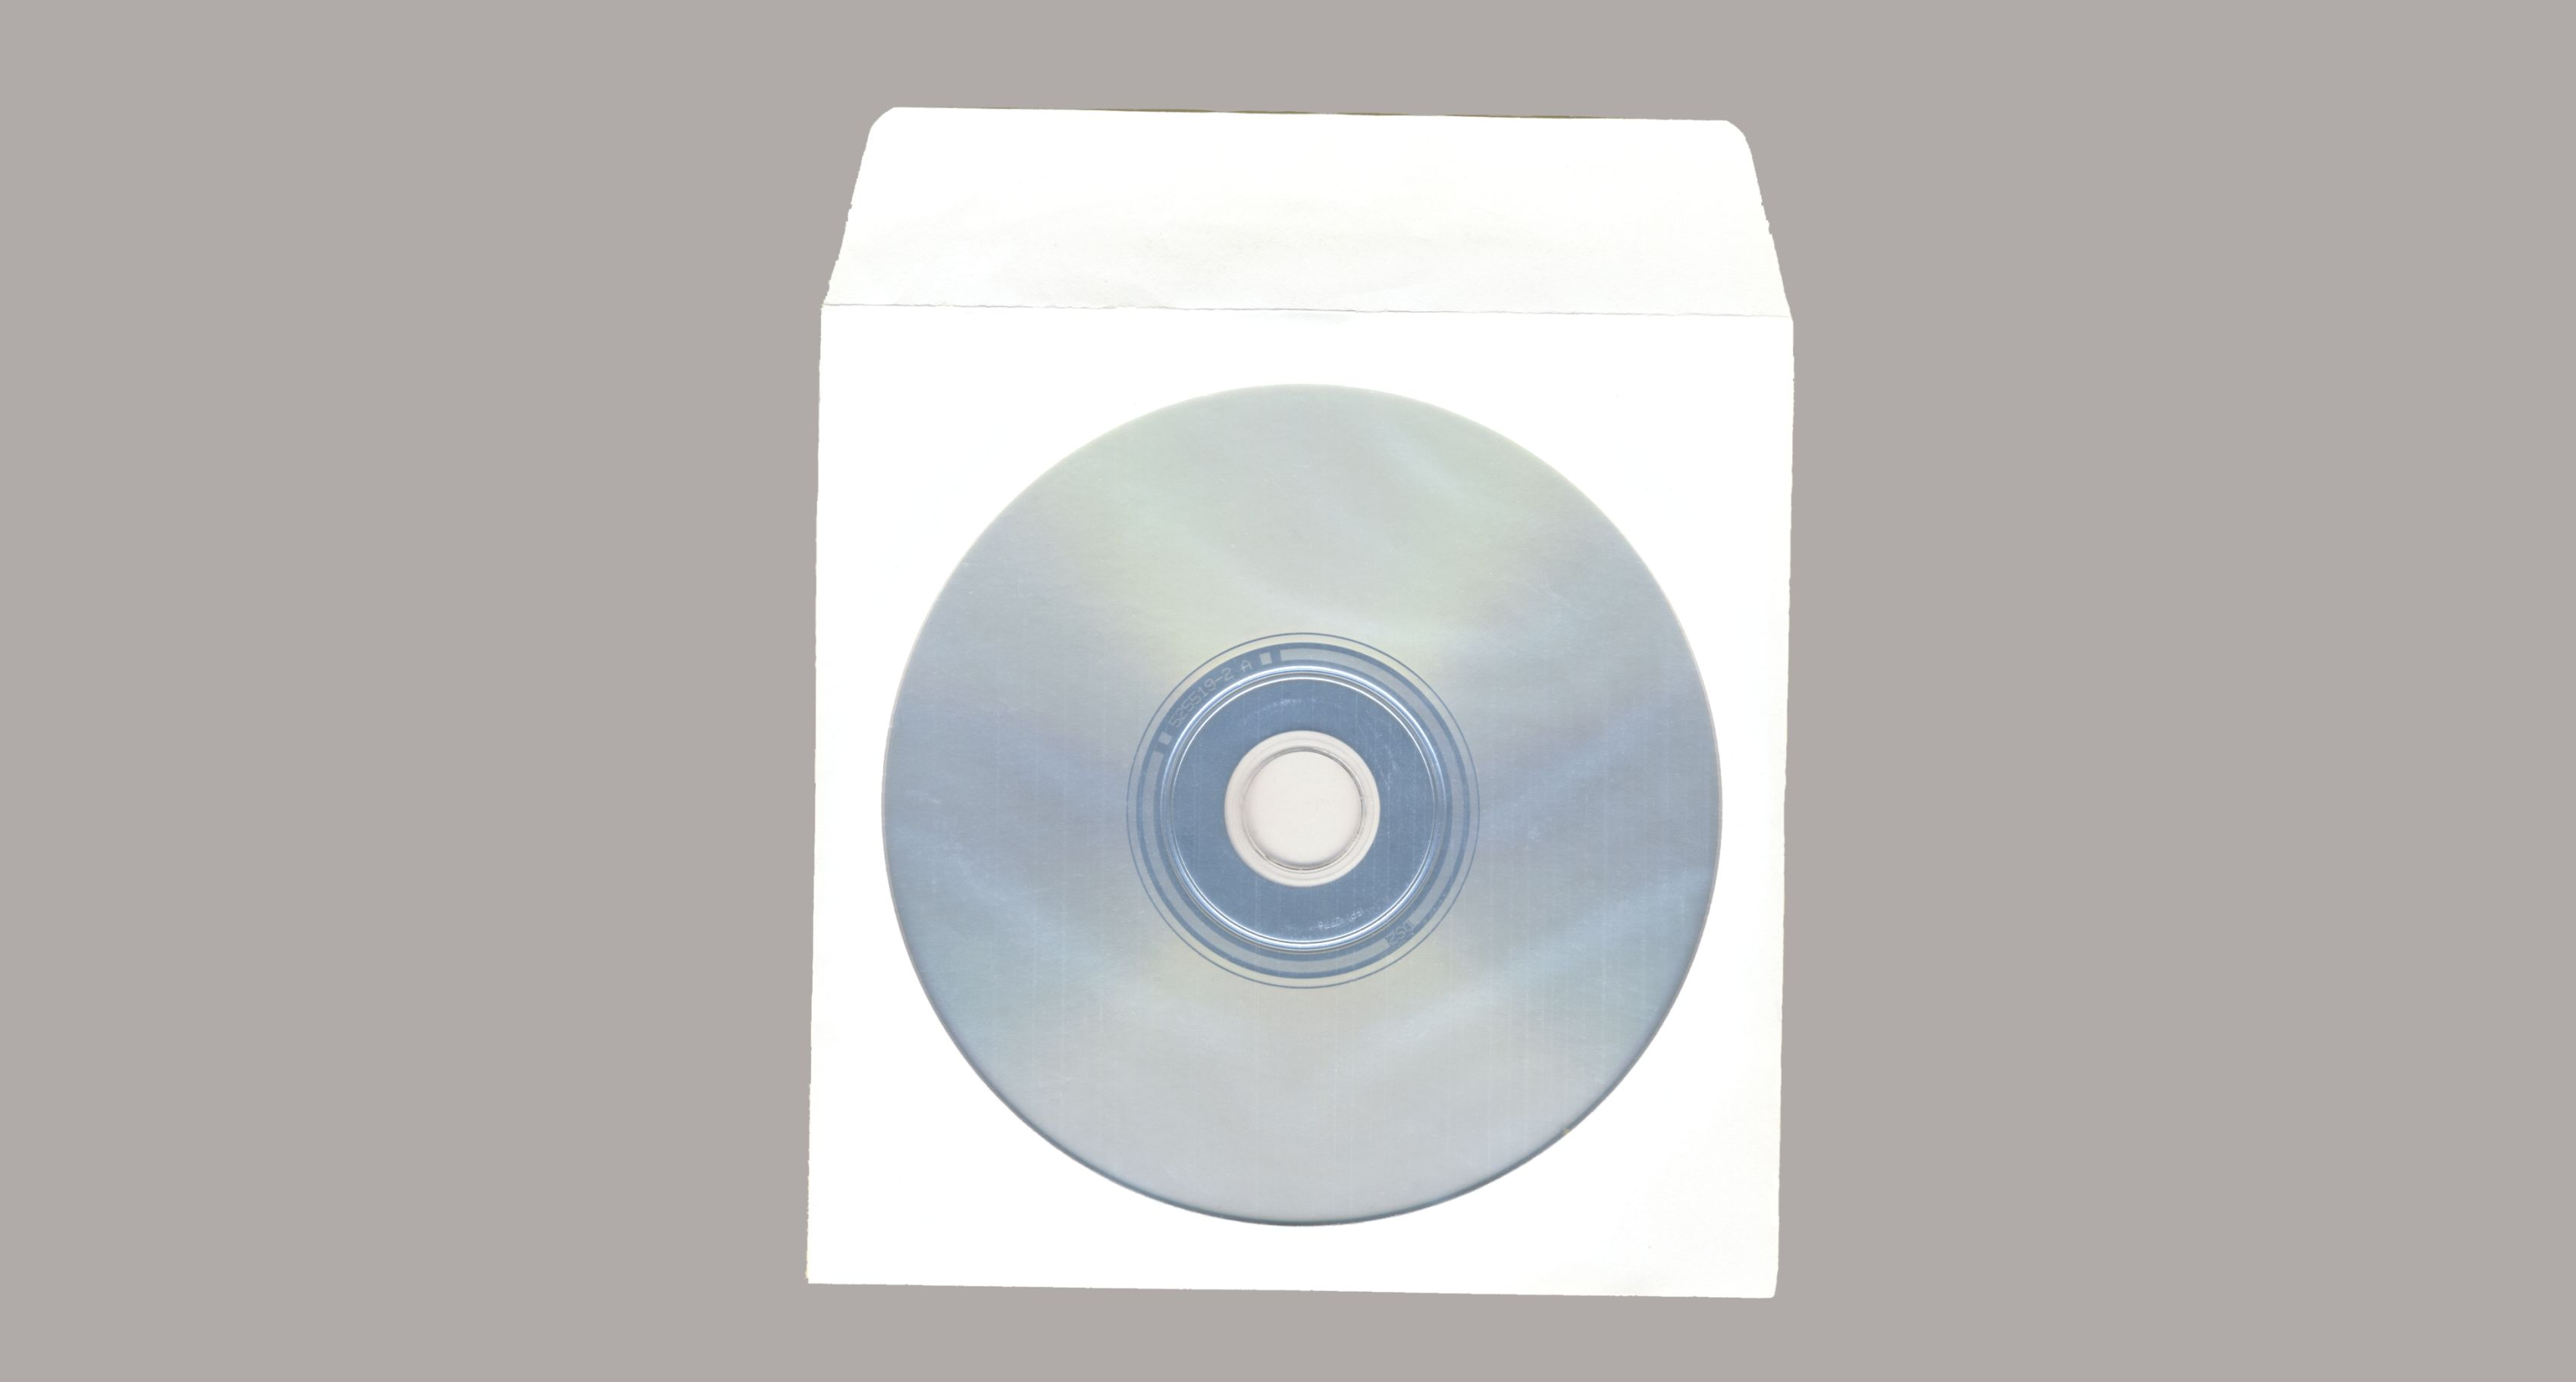 Optical disc packaging - Wikipedia